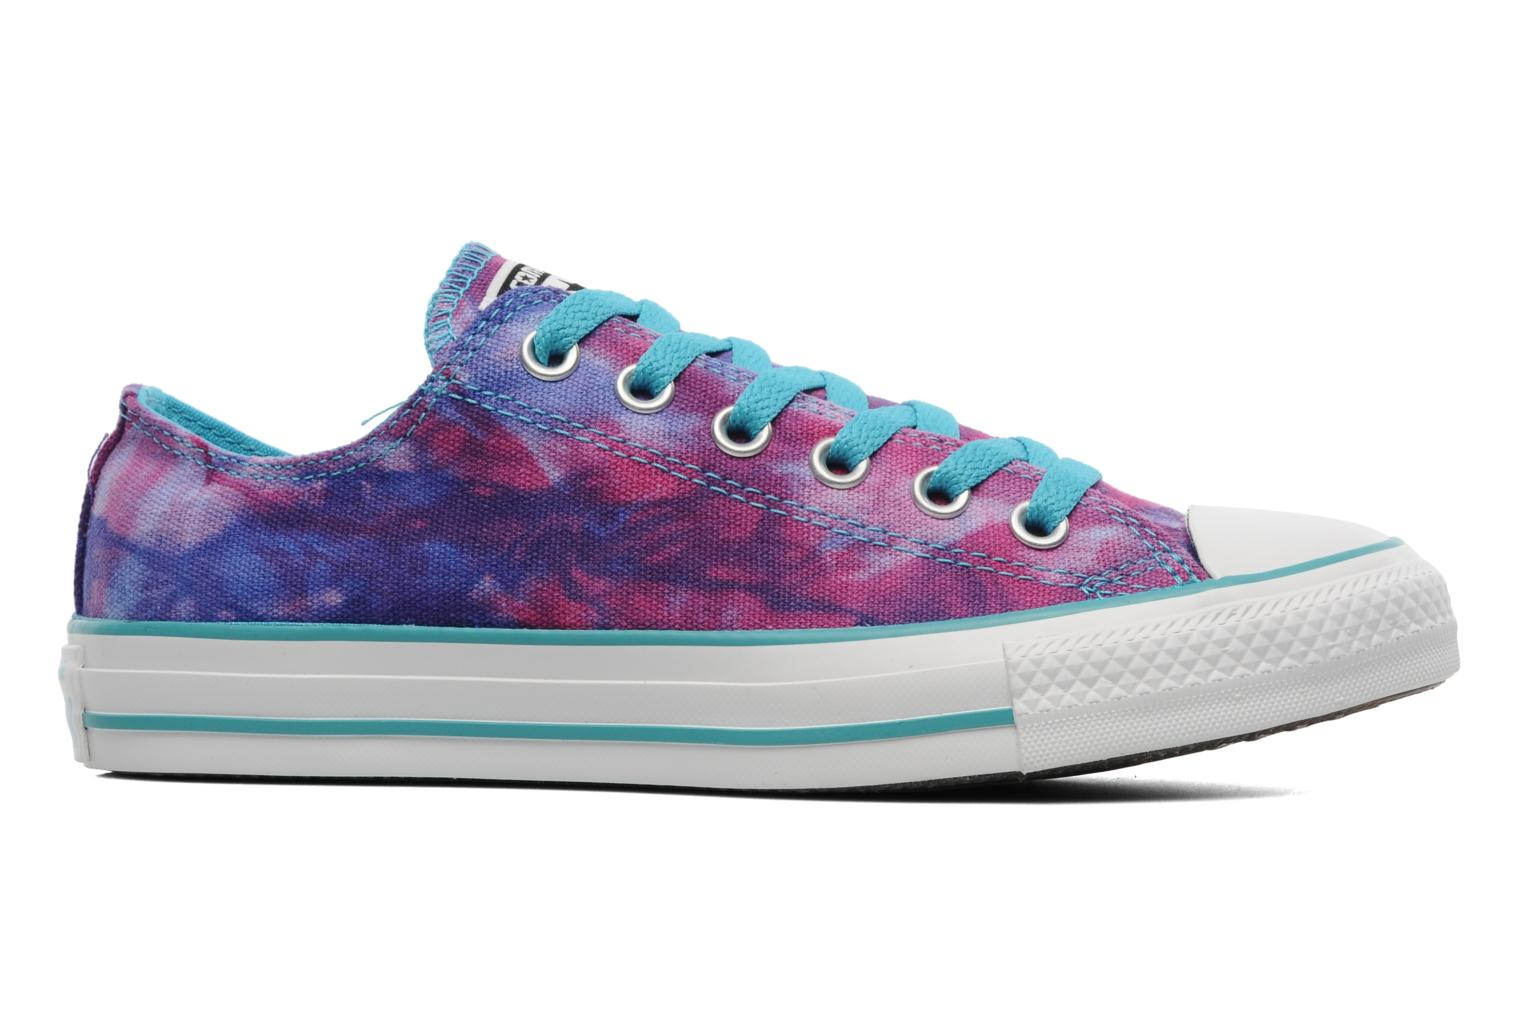 converse chuck all tie dye ox w trainers in multicolor at sarenza co uk 180646